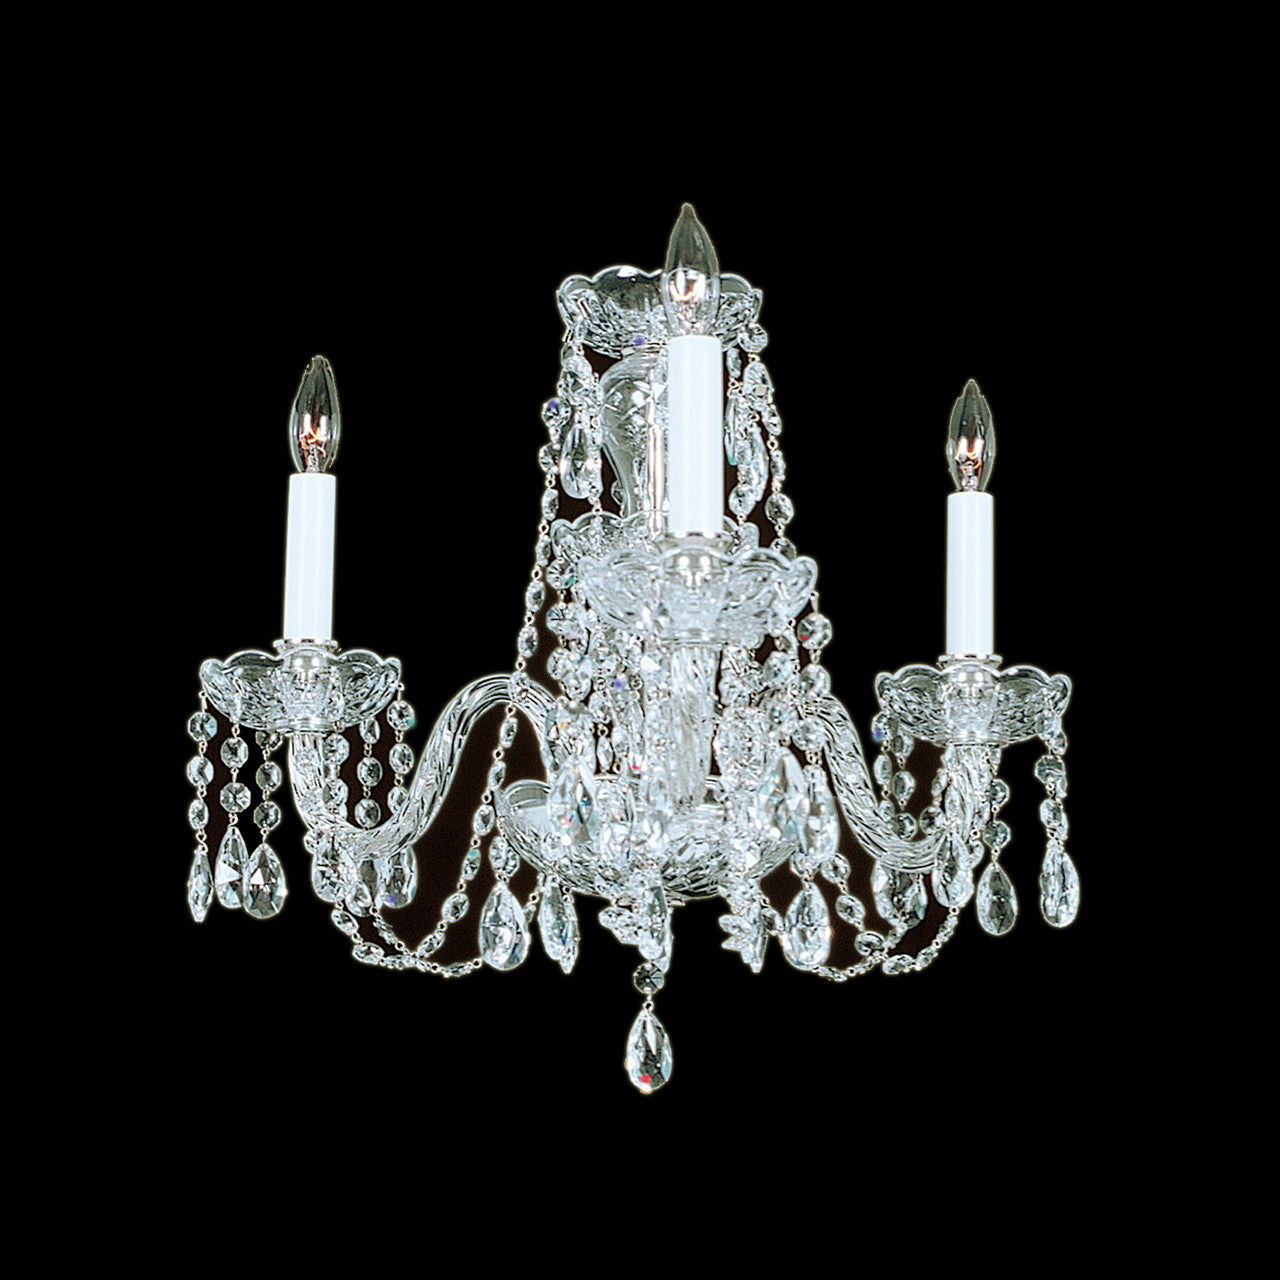 Swarovski Crystal Dollhouse Chandelier: 3 Light Crystal Chandelier With Swarovski